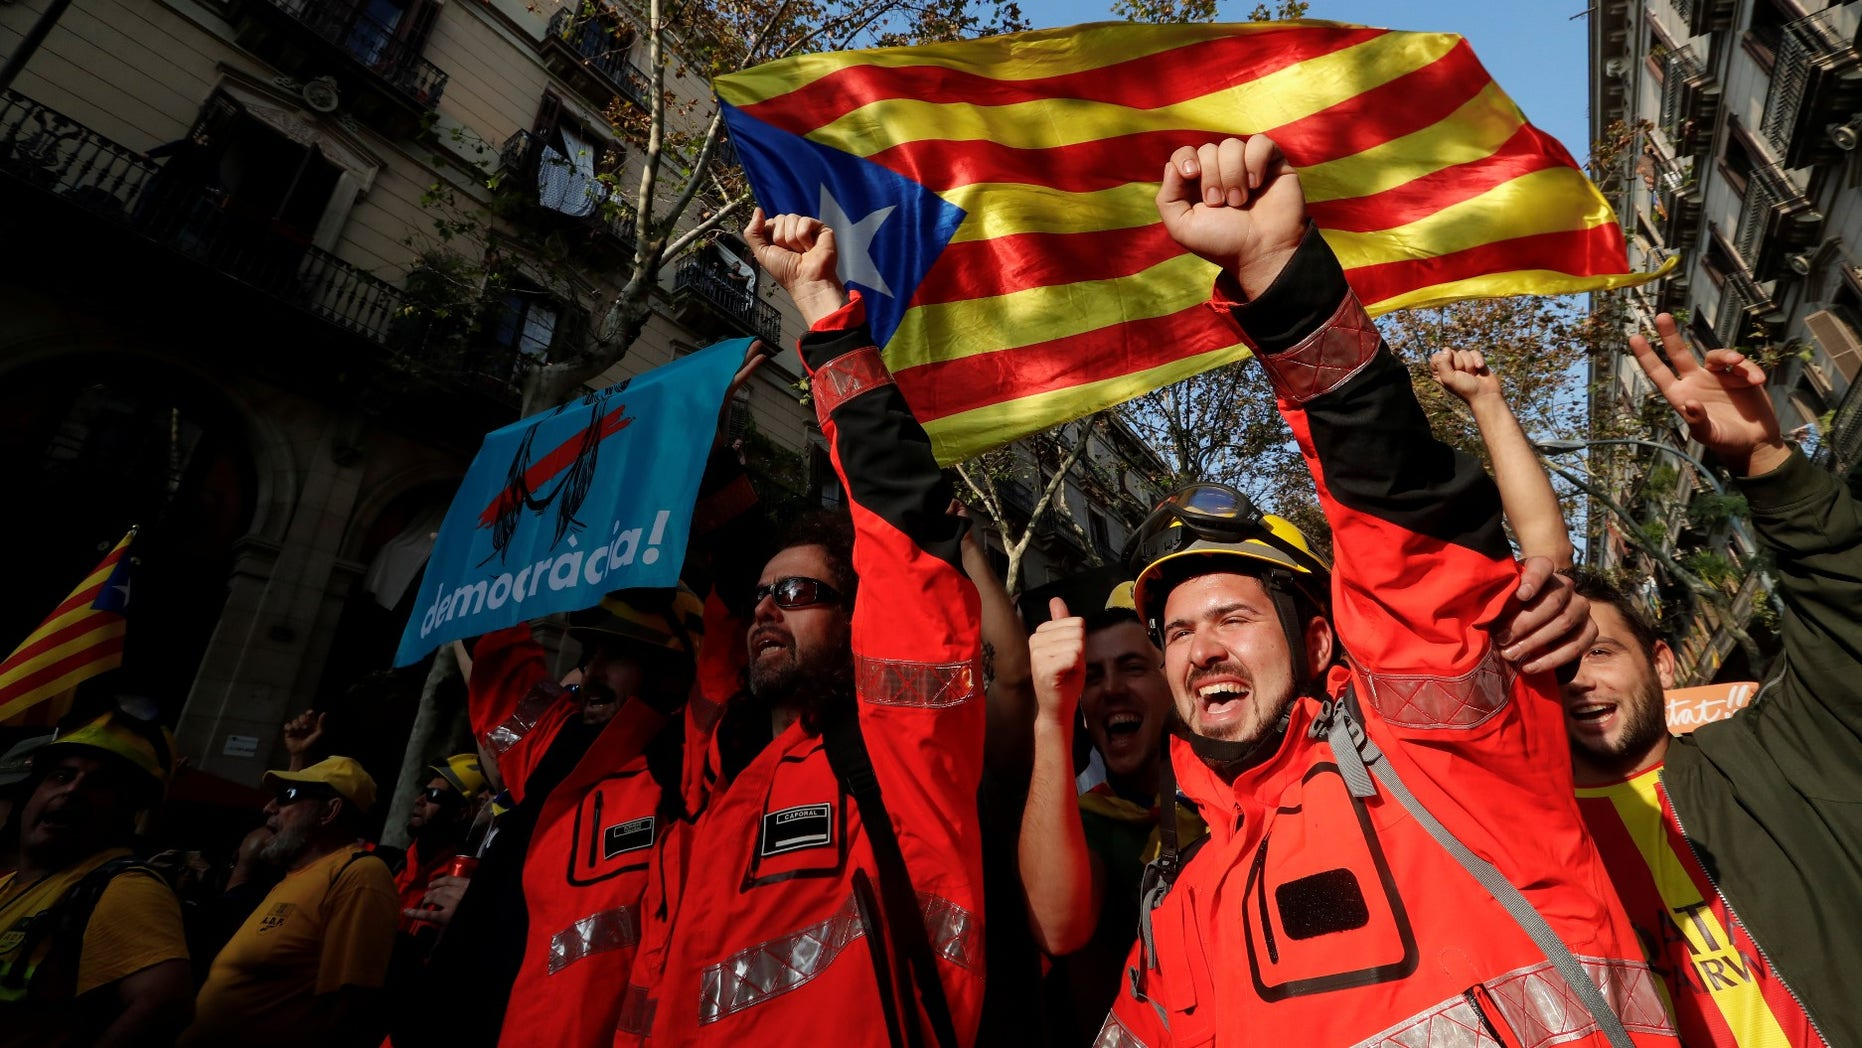 Firemen shout slongans under an Estelada (Catalan separatist flag) during a march in Barcelona, Spain, October 27, 2017.